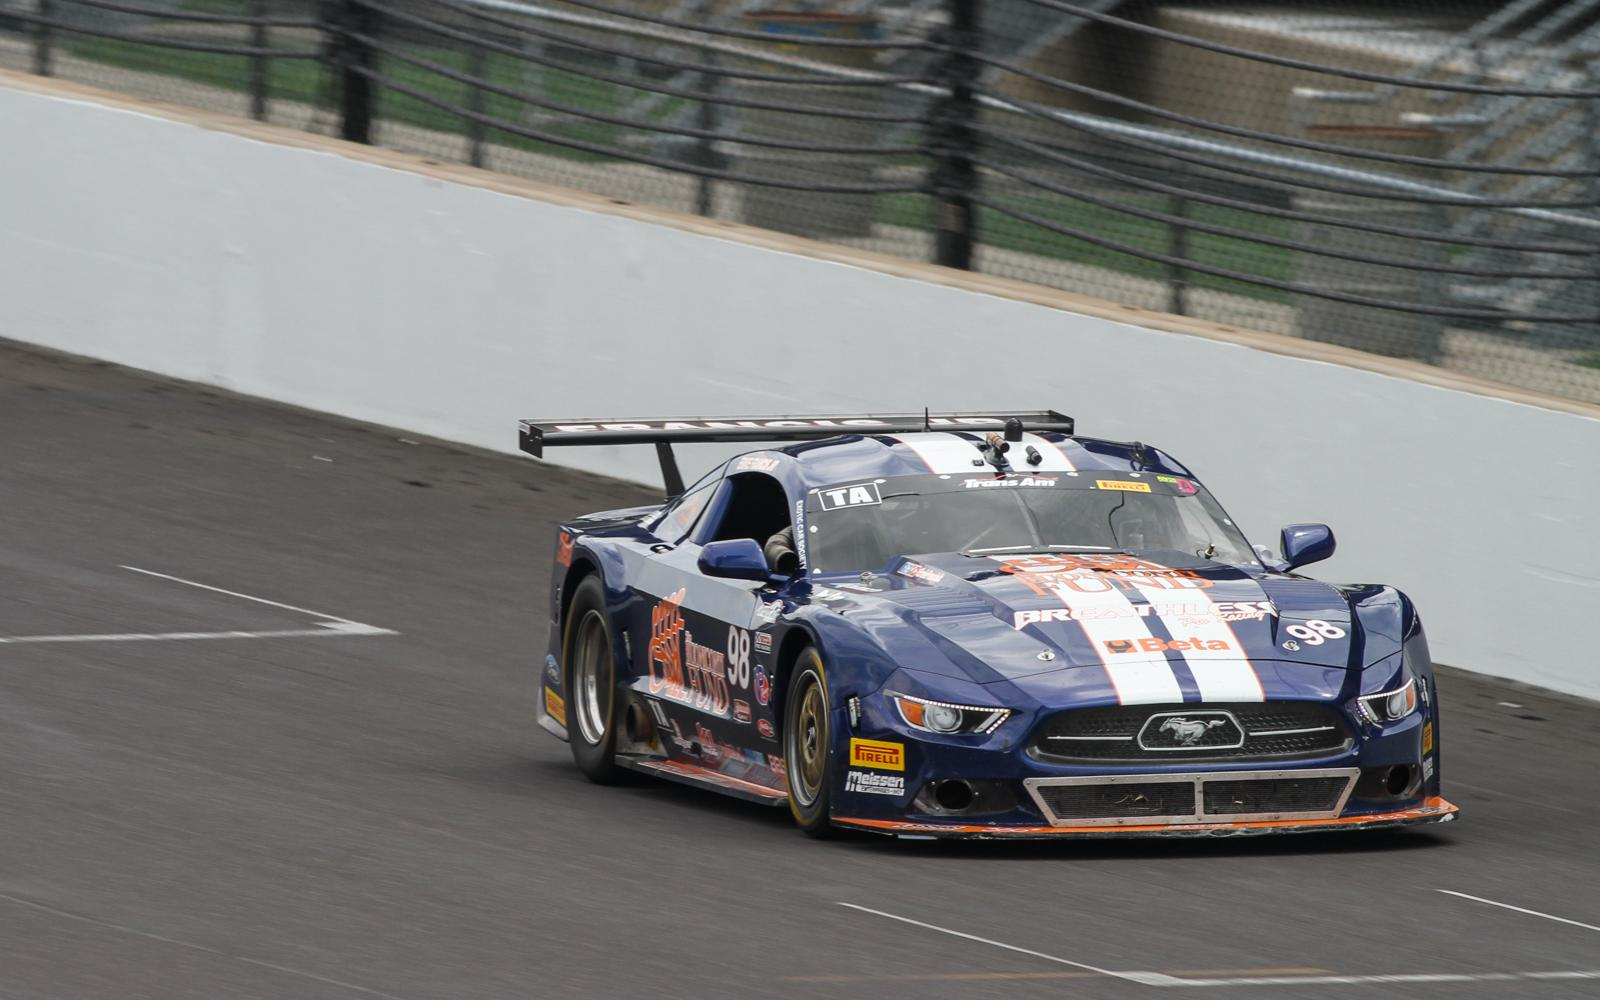 Francis' streak lives on with Trans Am win number four at Indianapolis Motor Speedway